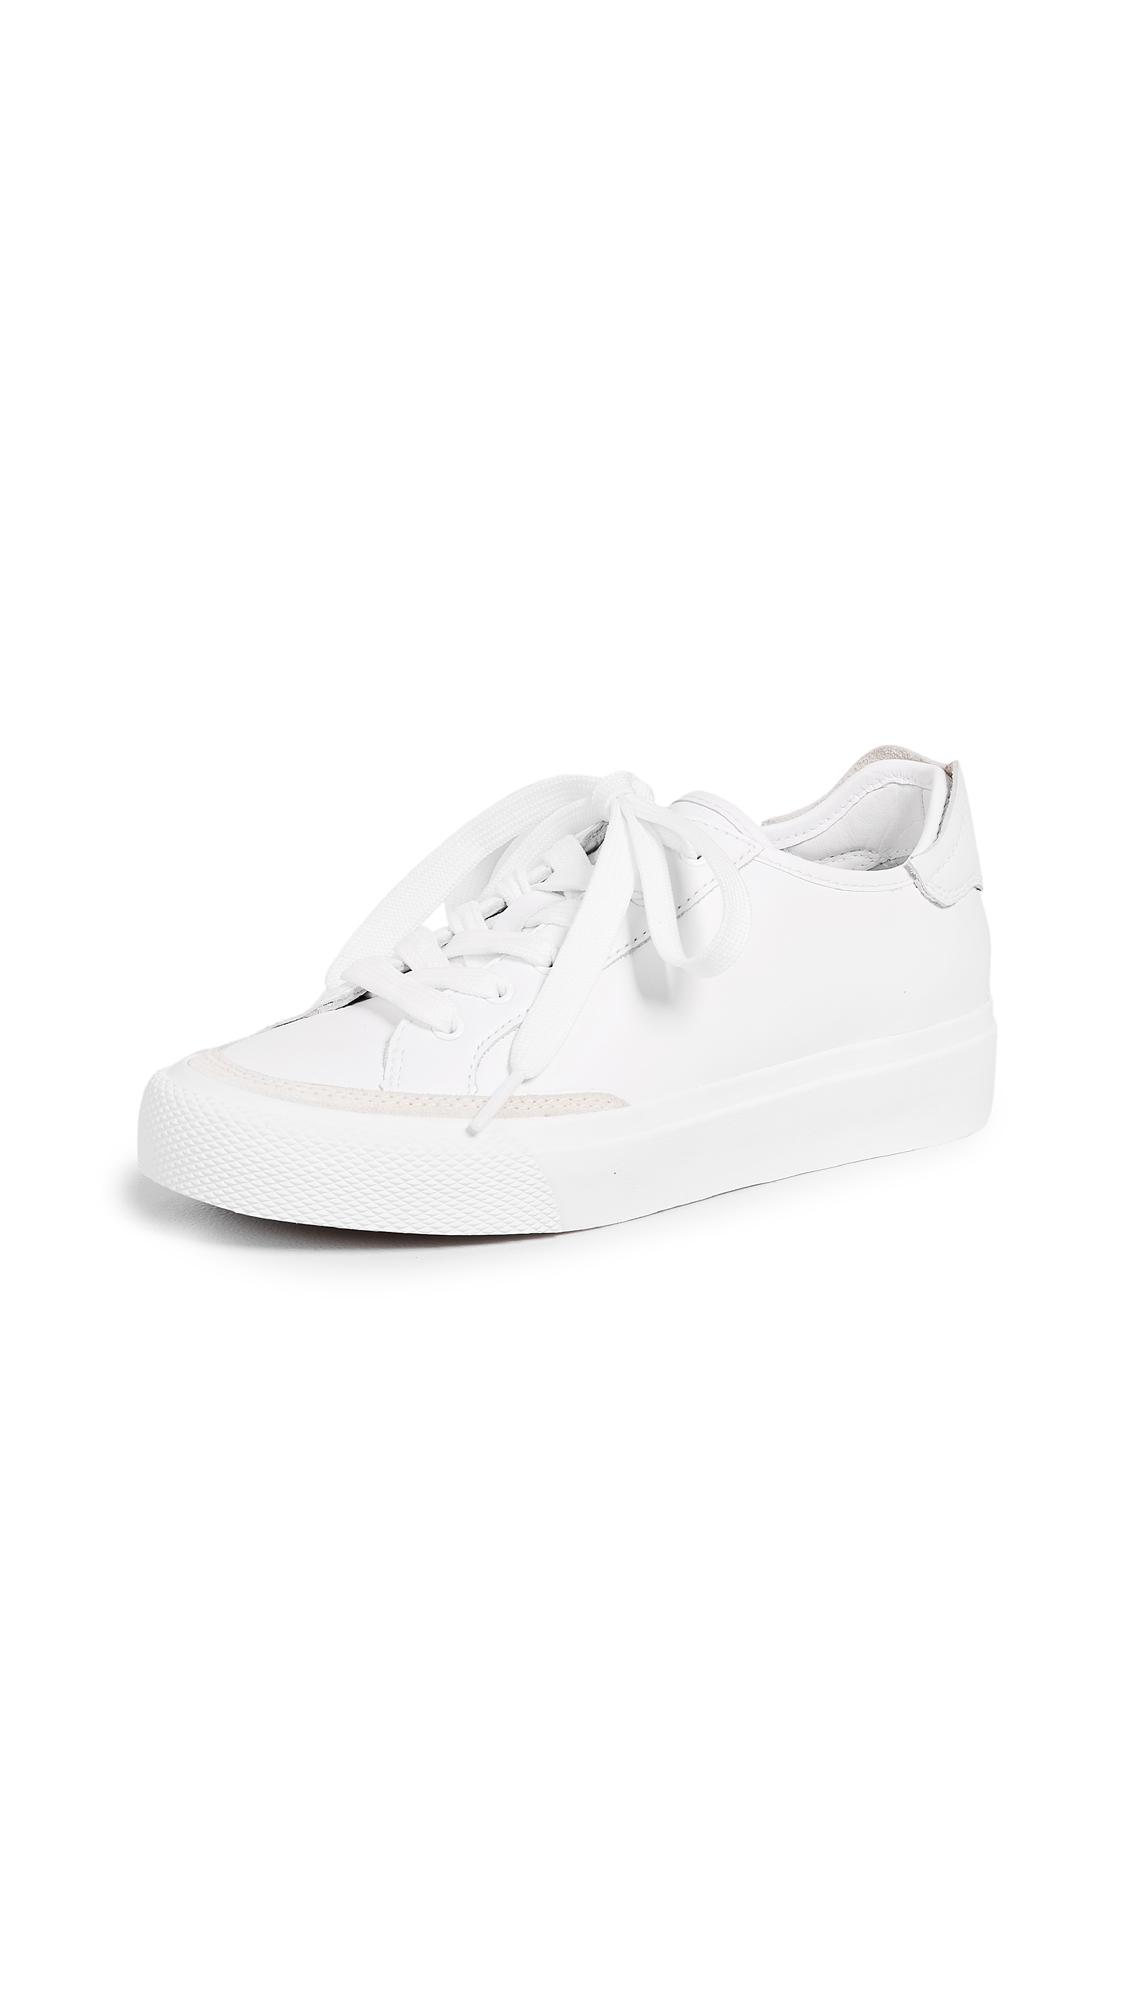 Rag & Bone Woman Standard Issue Perforated Leather Sneakers White In 150 White Leather